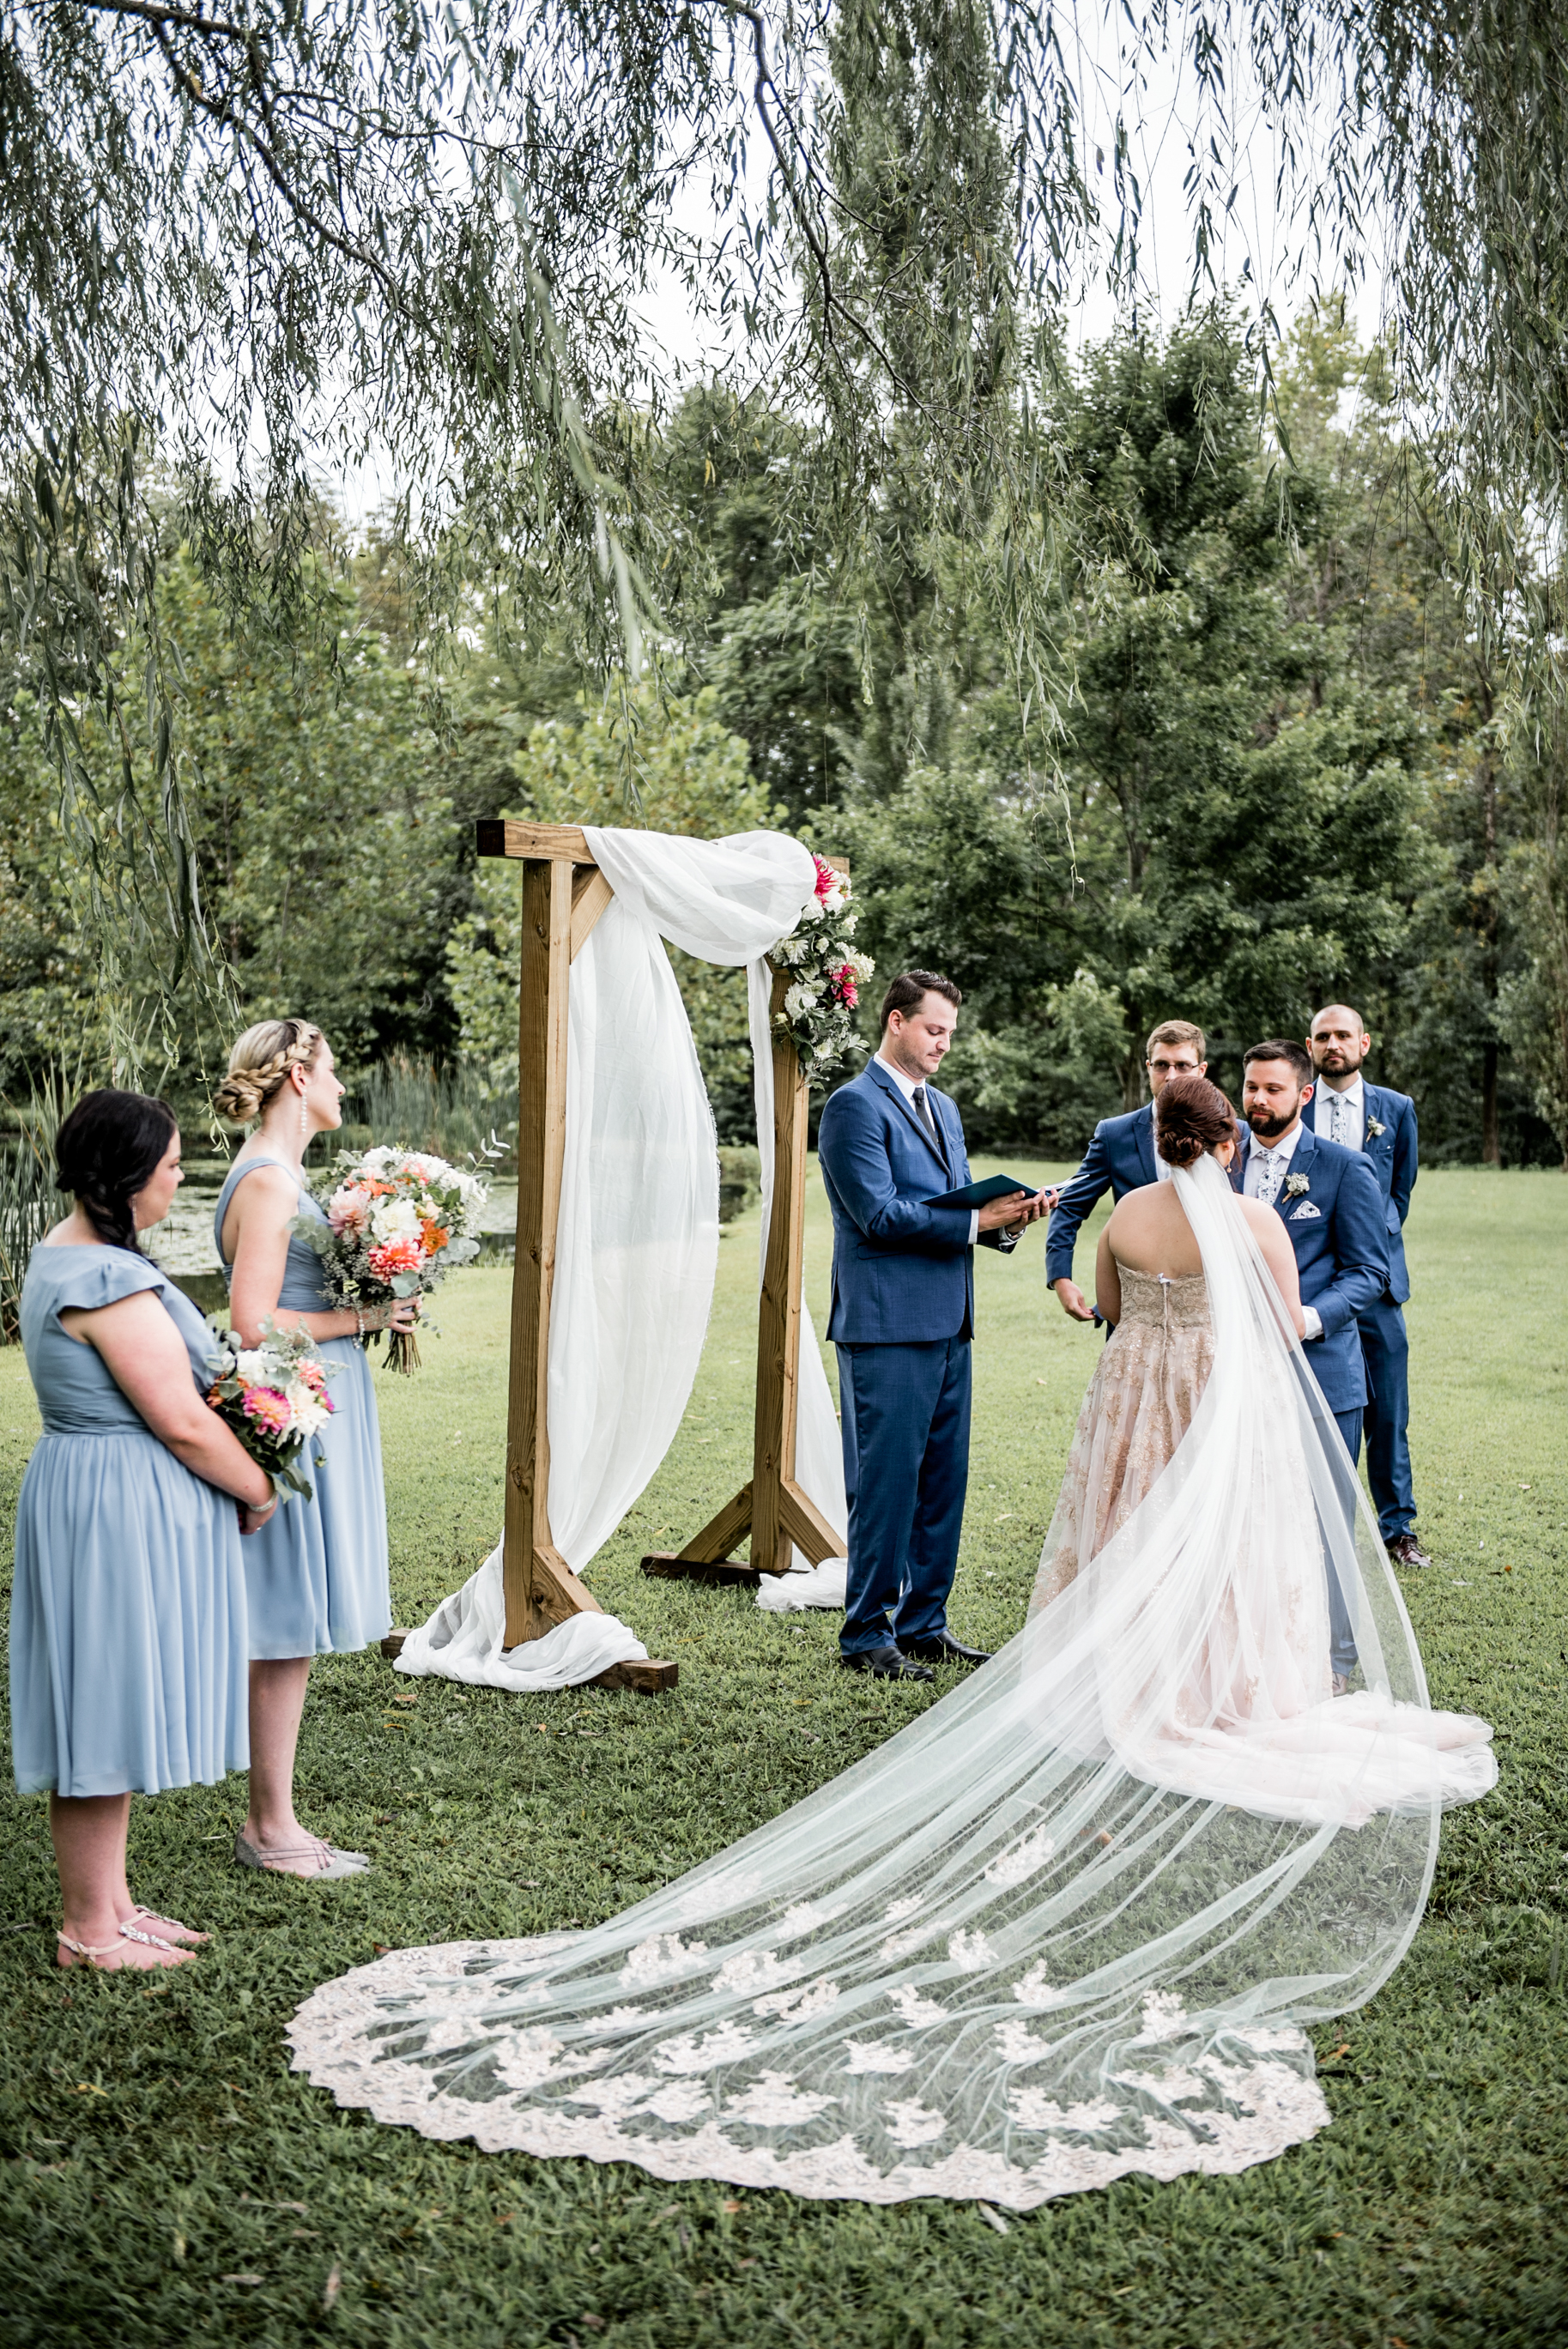 romantic cathedral veil blows in wind during ceremony under willow tree